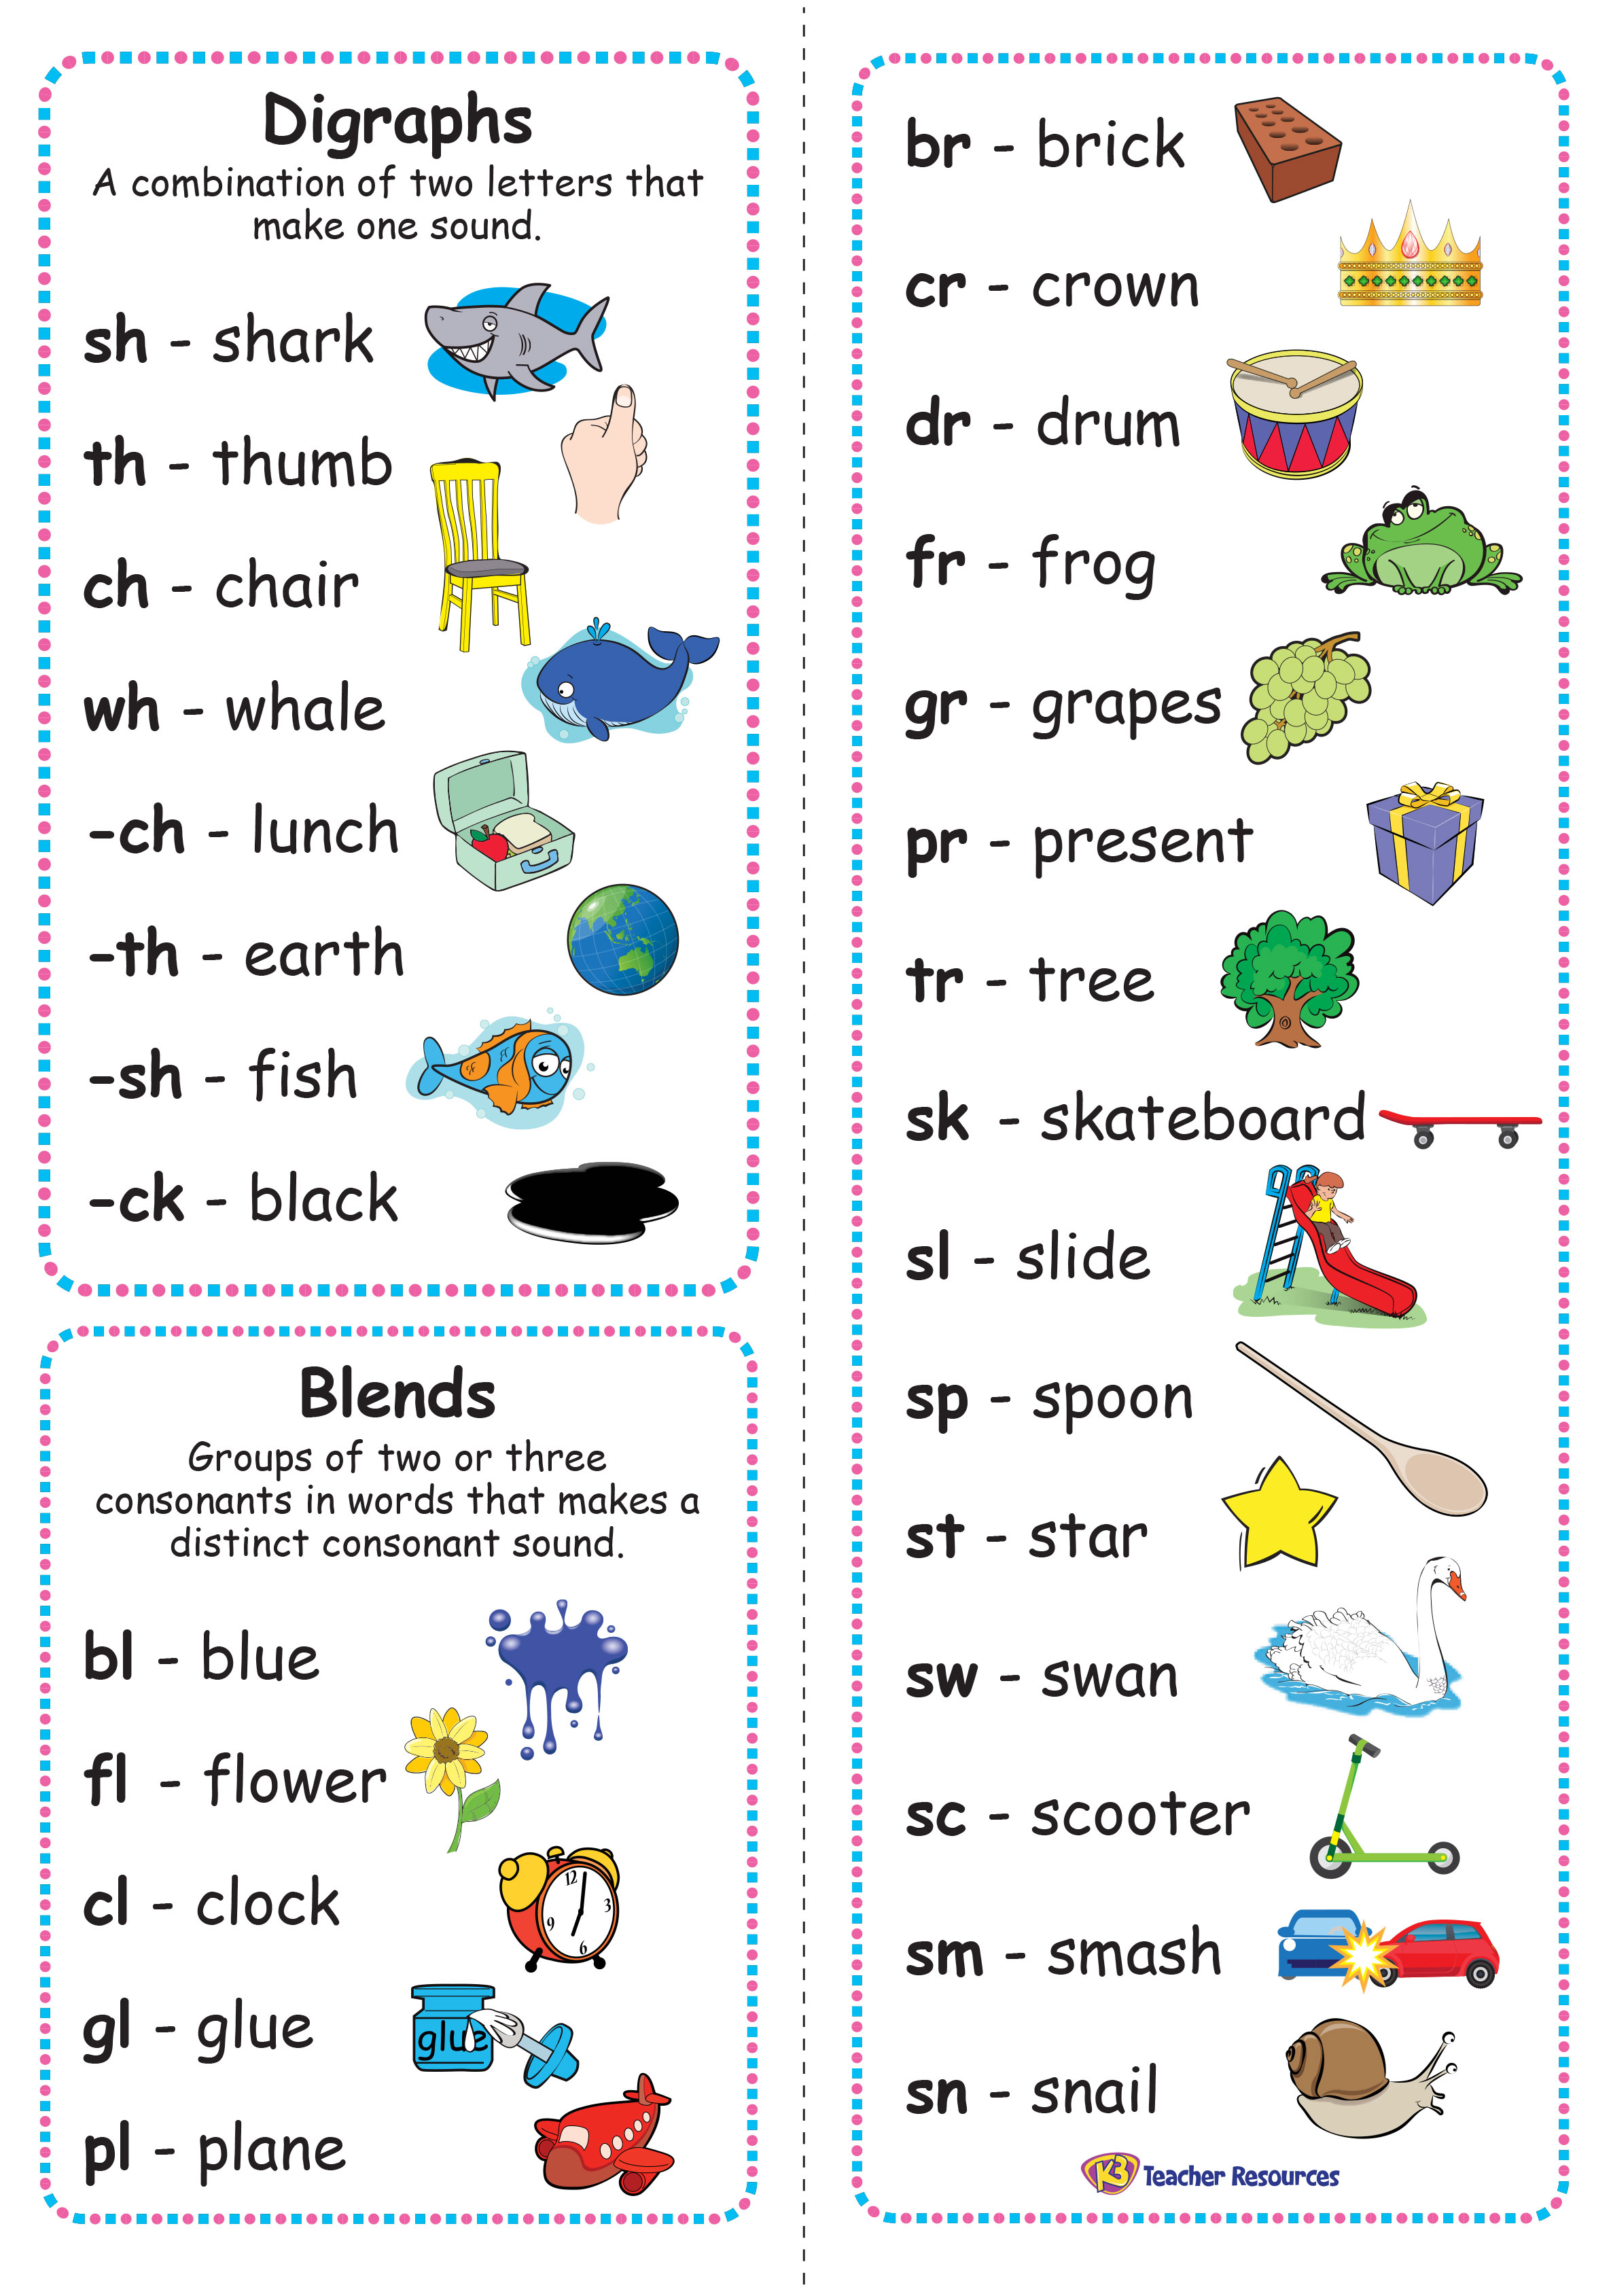 Common Digraphs and Blends Bookmark K 3 Teacher Resources